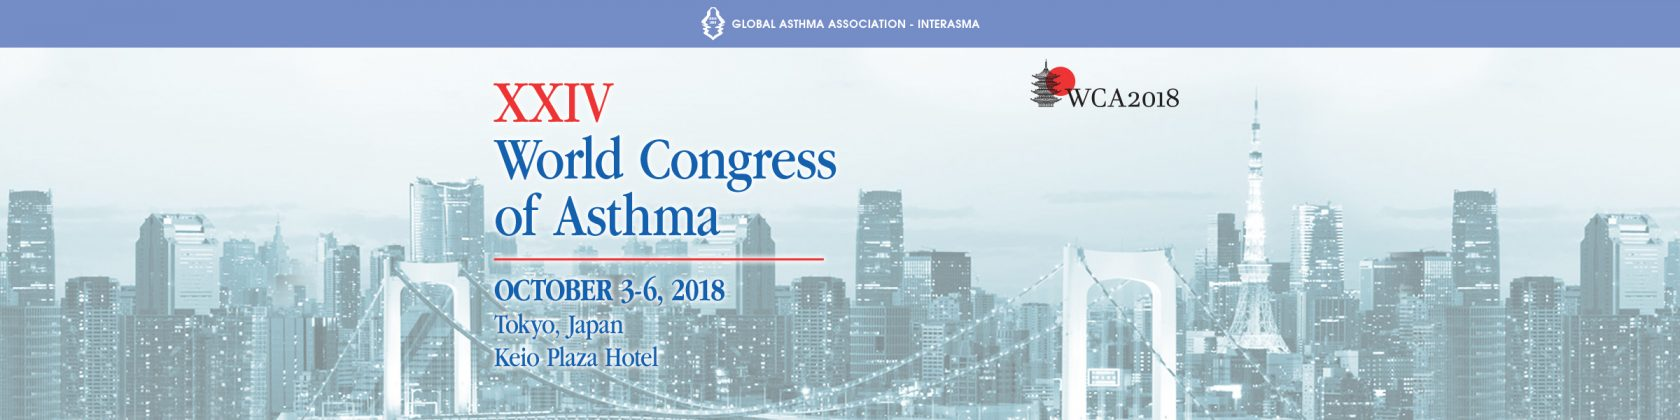 XXIV World Congress of Asthma (WCA-2018)